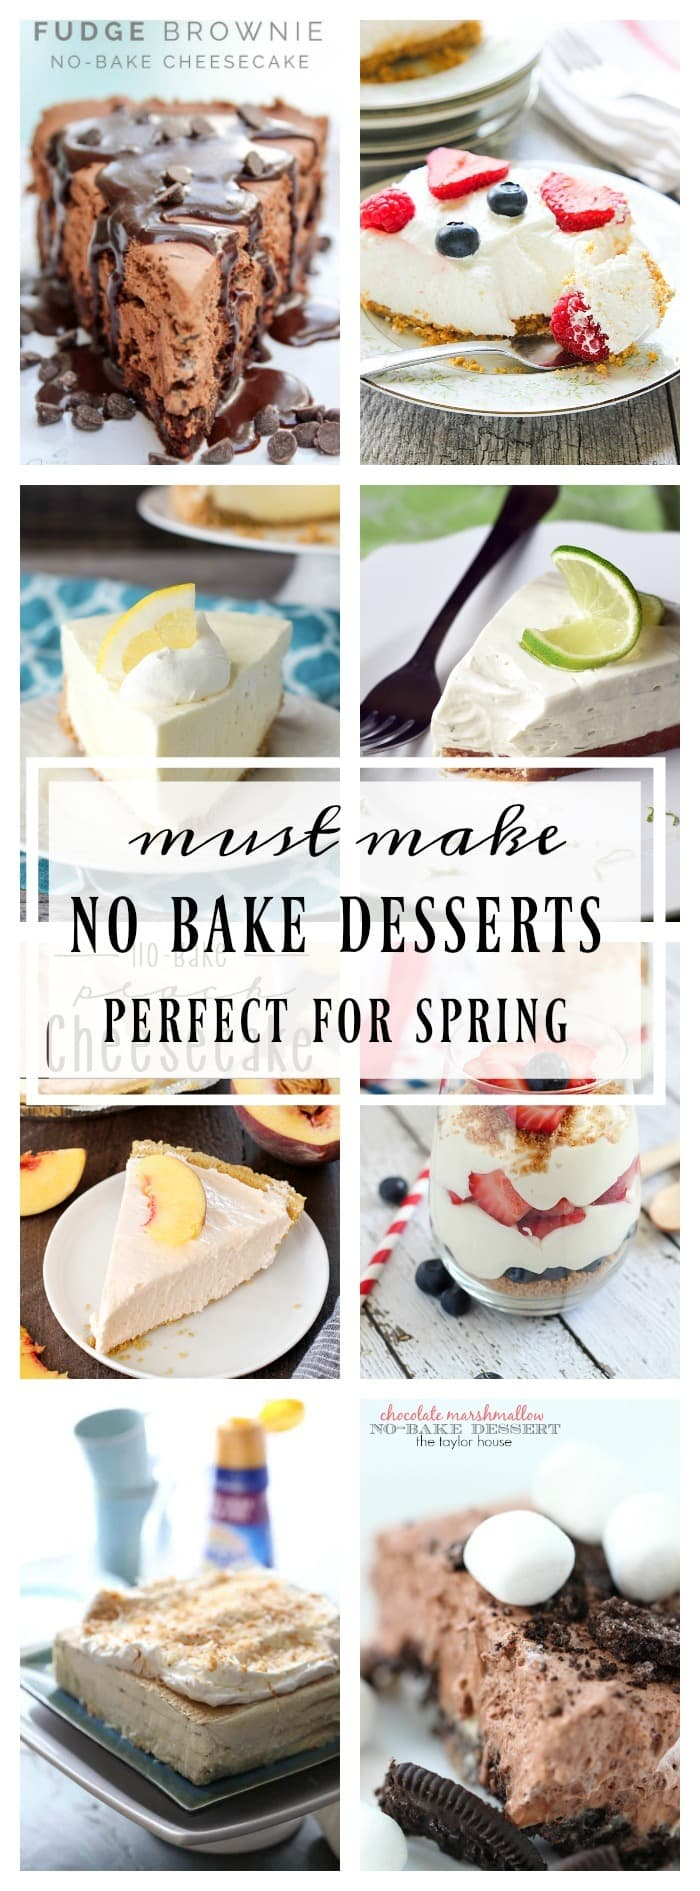 19+ of the Best Ever No Bake Dessert Recipes!